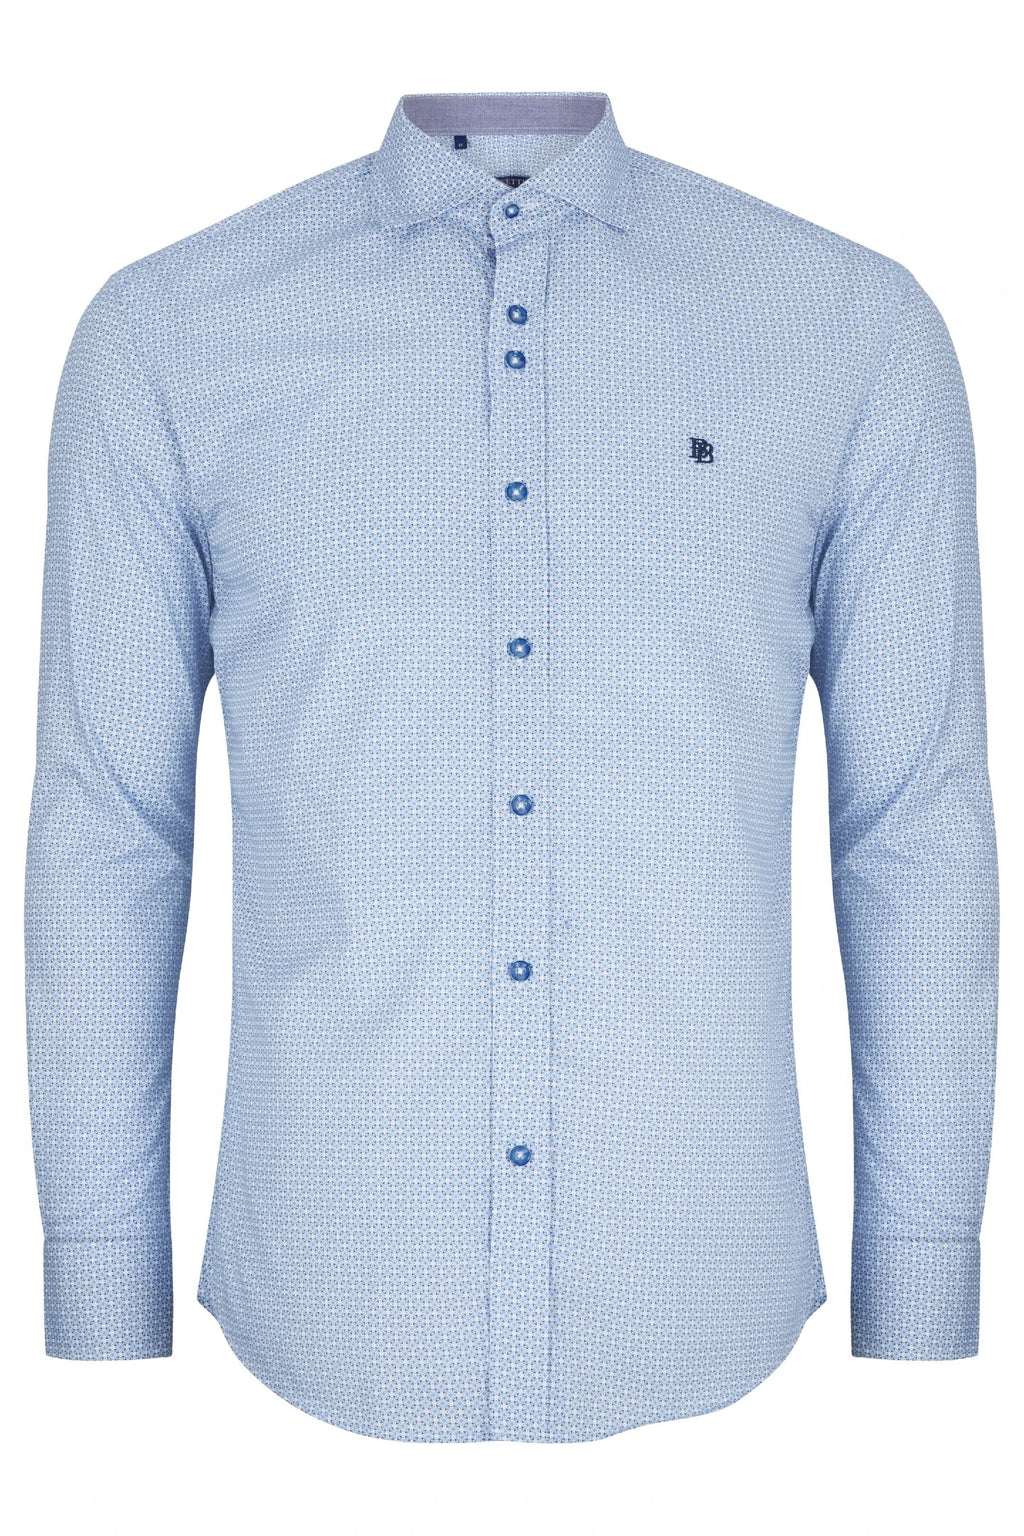 Benetti Modern Fit Alex Shirt - Sky Blue - jjdonnelly